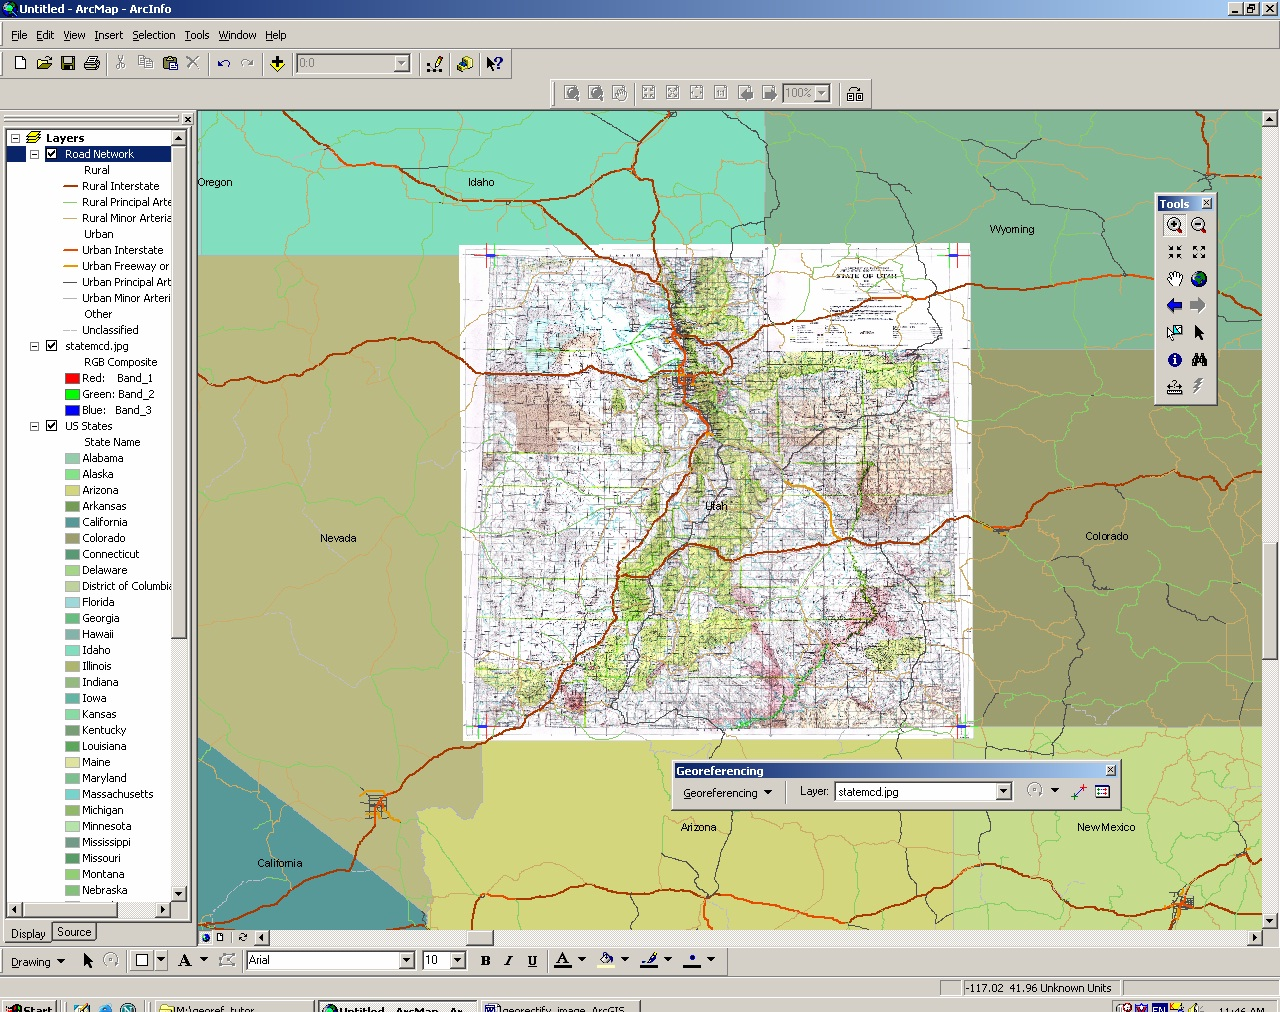 how to create attribute table for raster data in arcgis